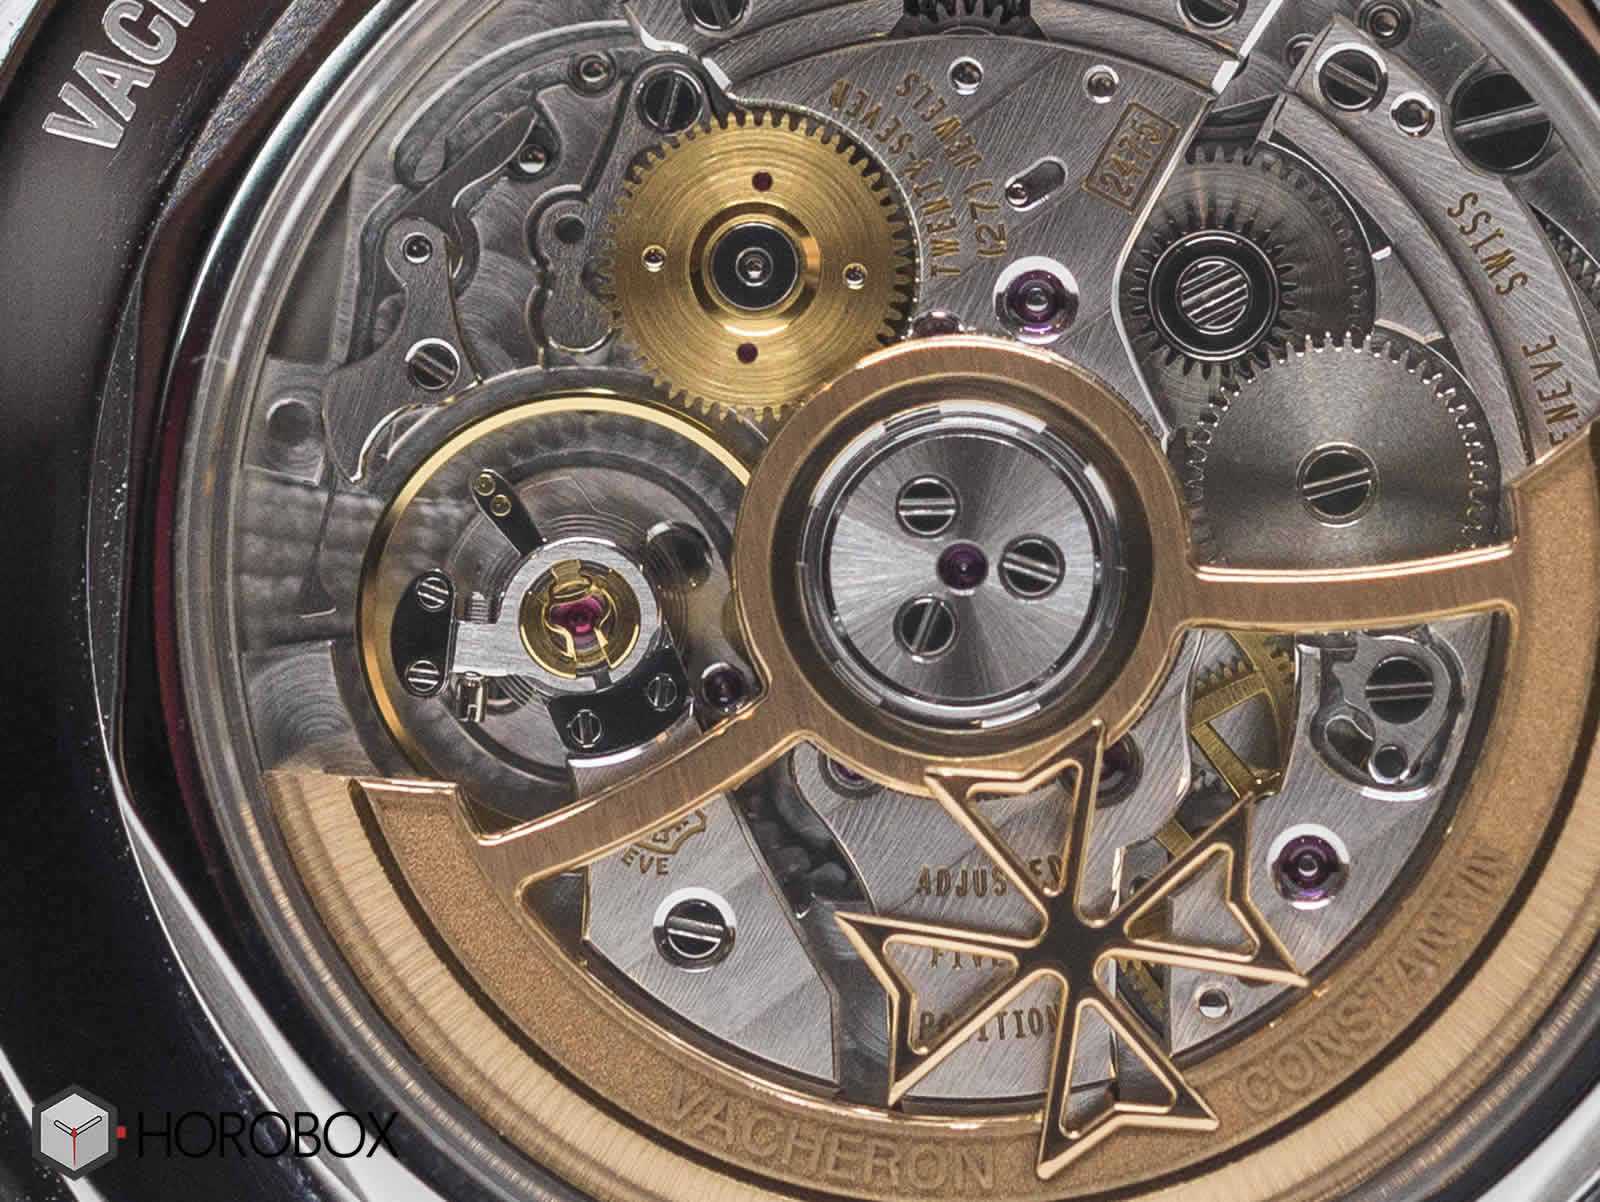 4400e-000a-b437-Vacheron-Constantin-Fifty-Six-Day-Date-7.jpg